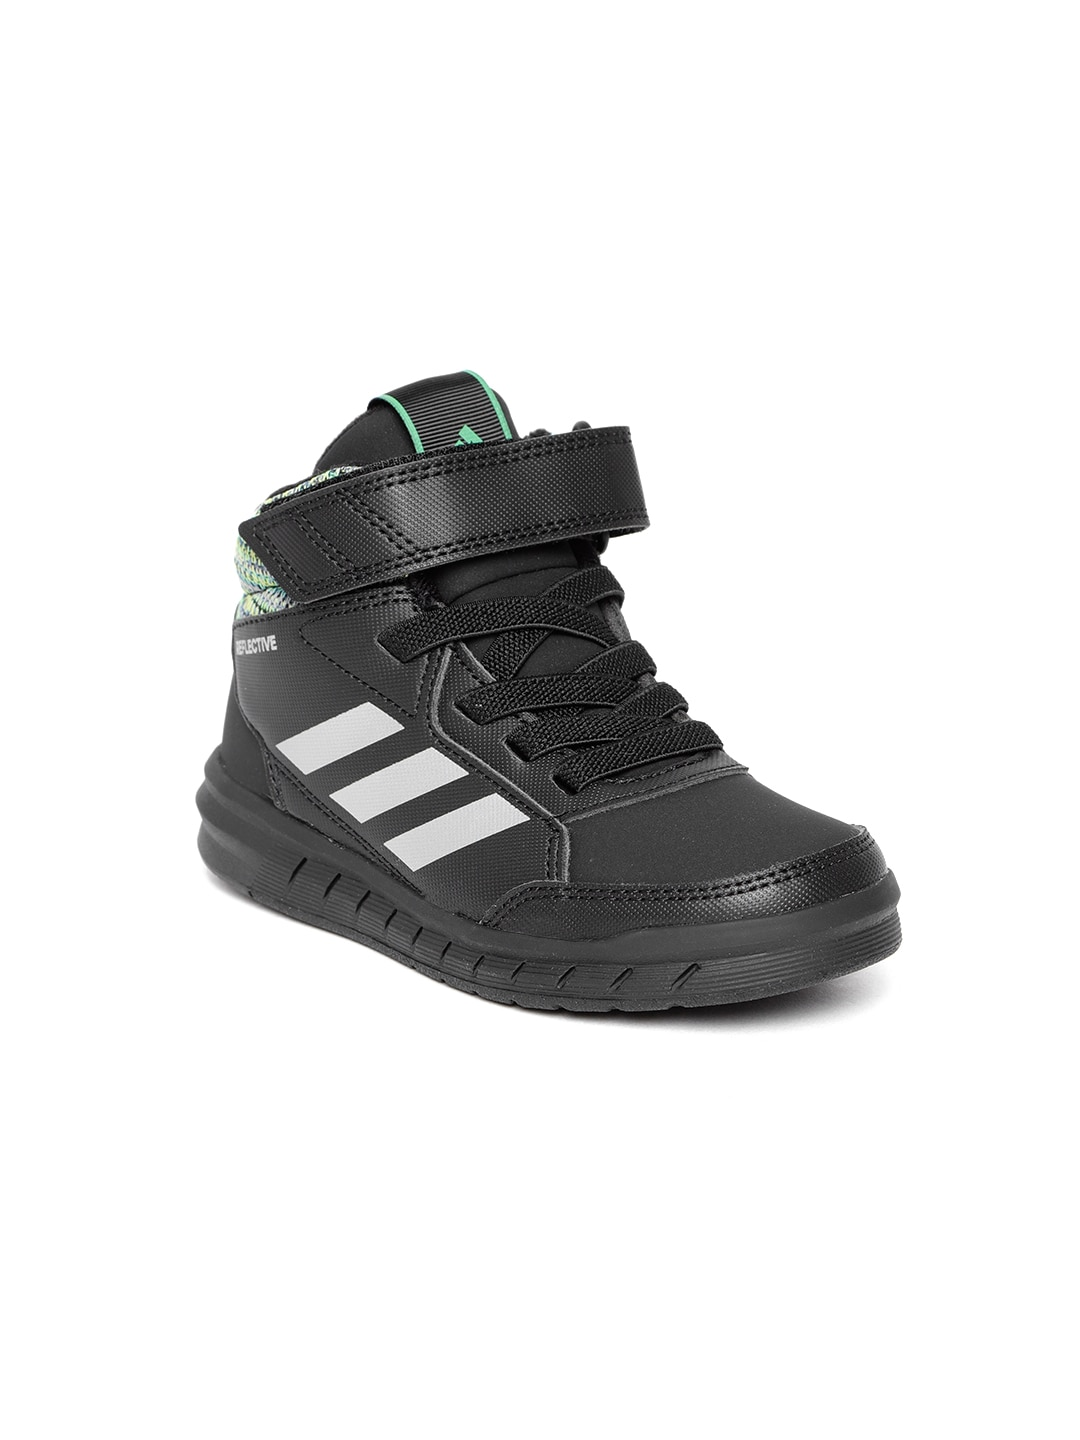 separation shoes 8fcca 21f29 Adidas Velcro Shoes - Buy Adidas Velcro Shoes online in Indi